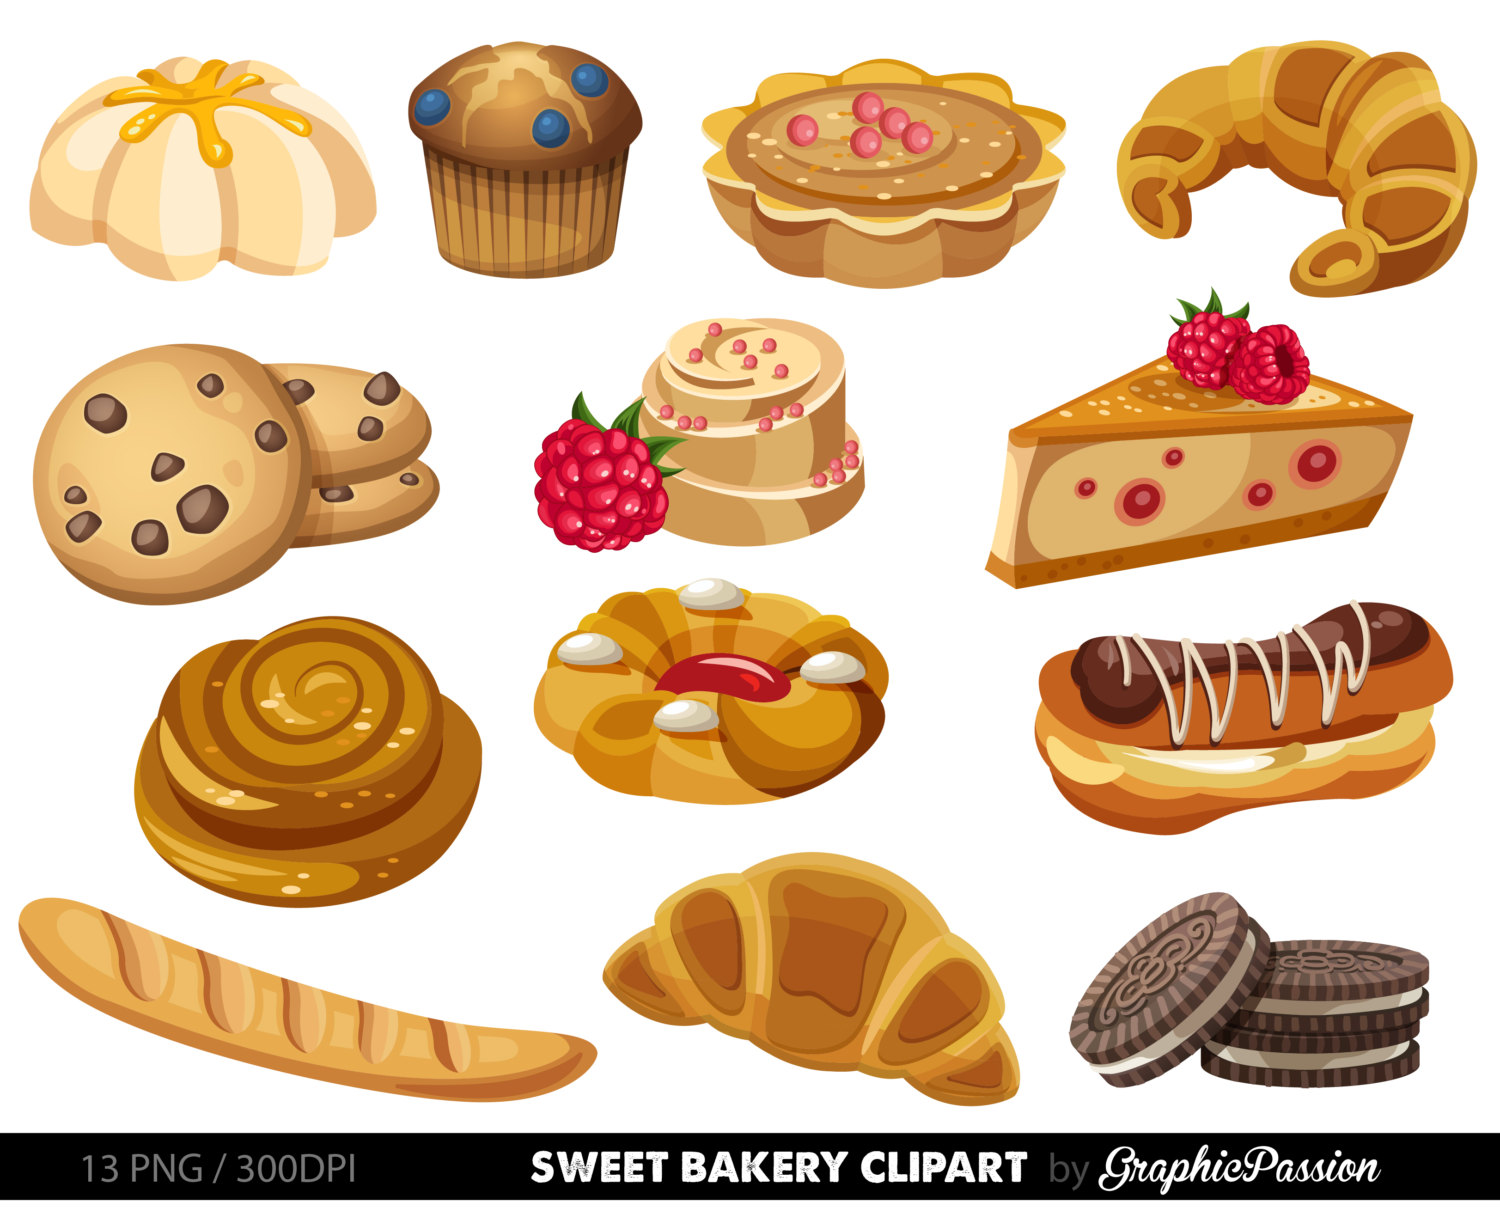 Baking clipart sweet treat Item? this art Treat clipart